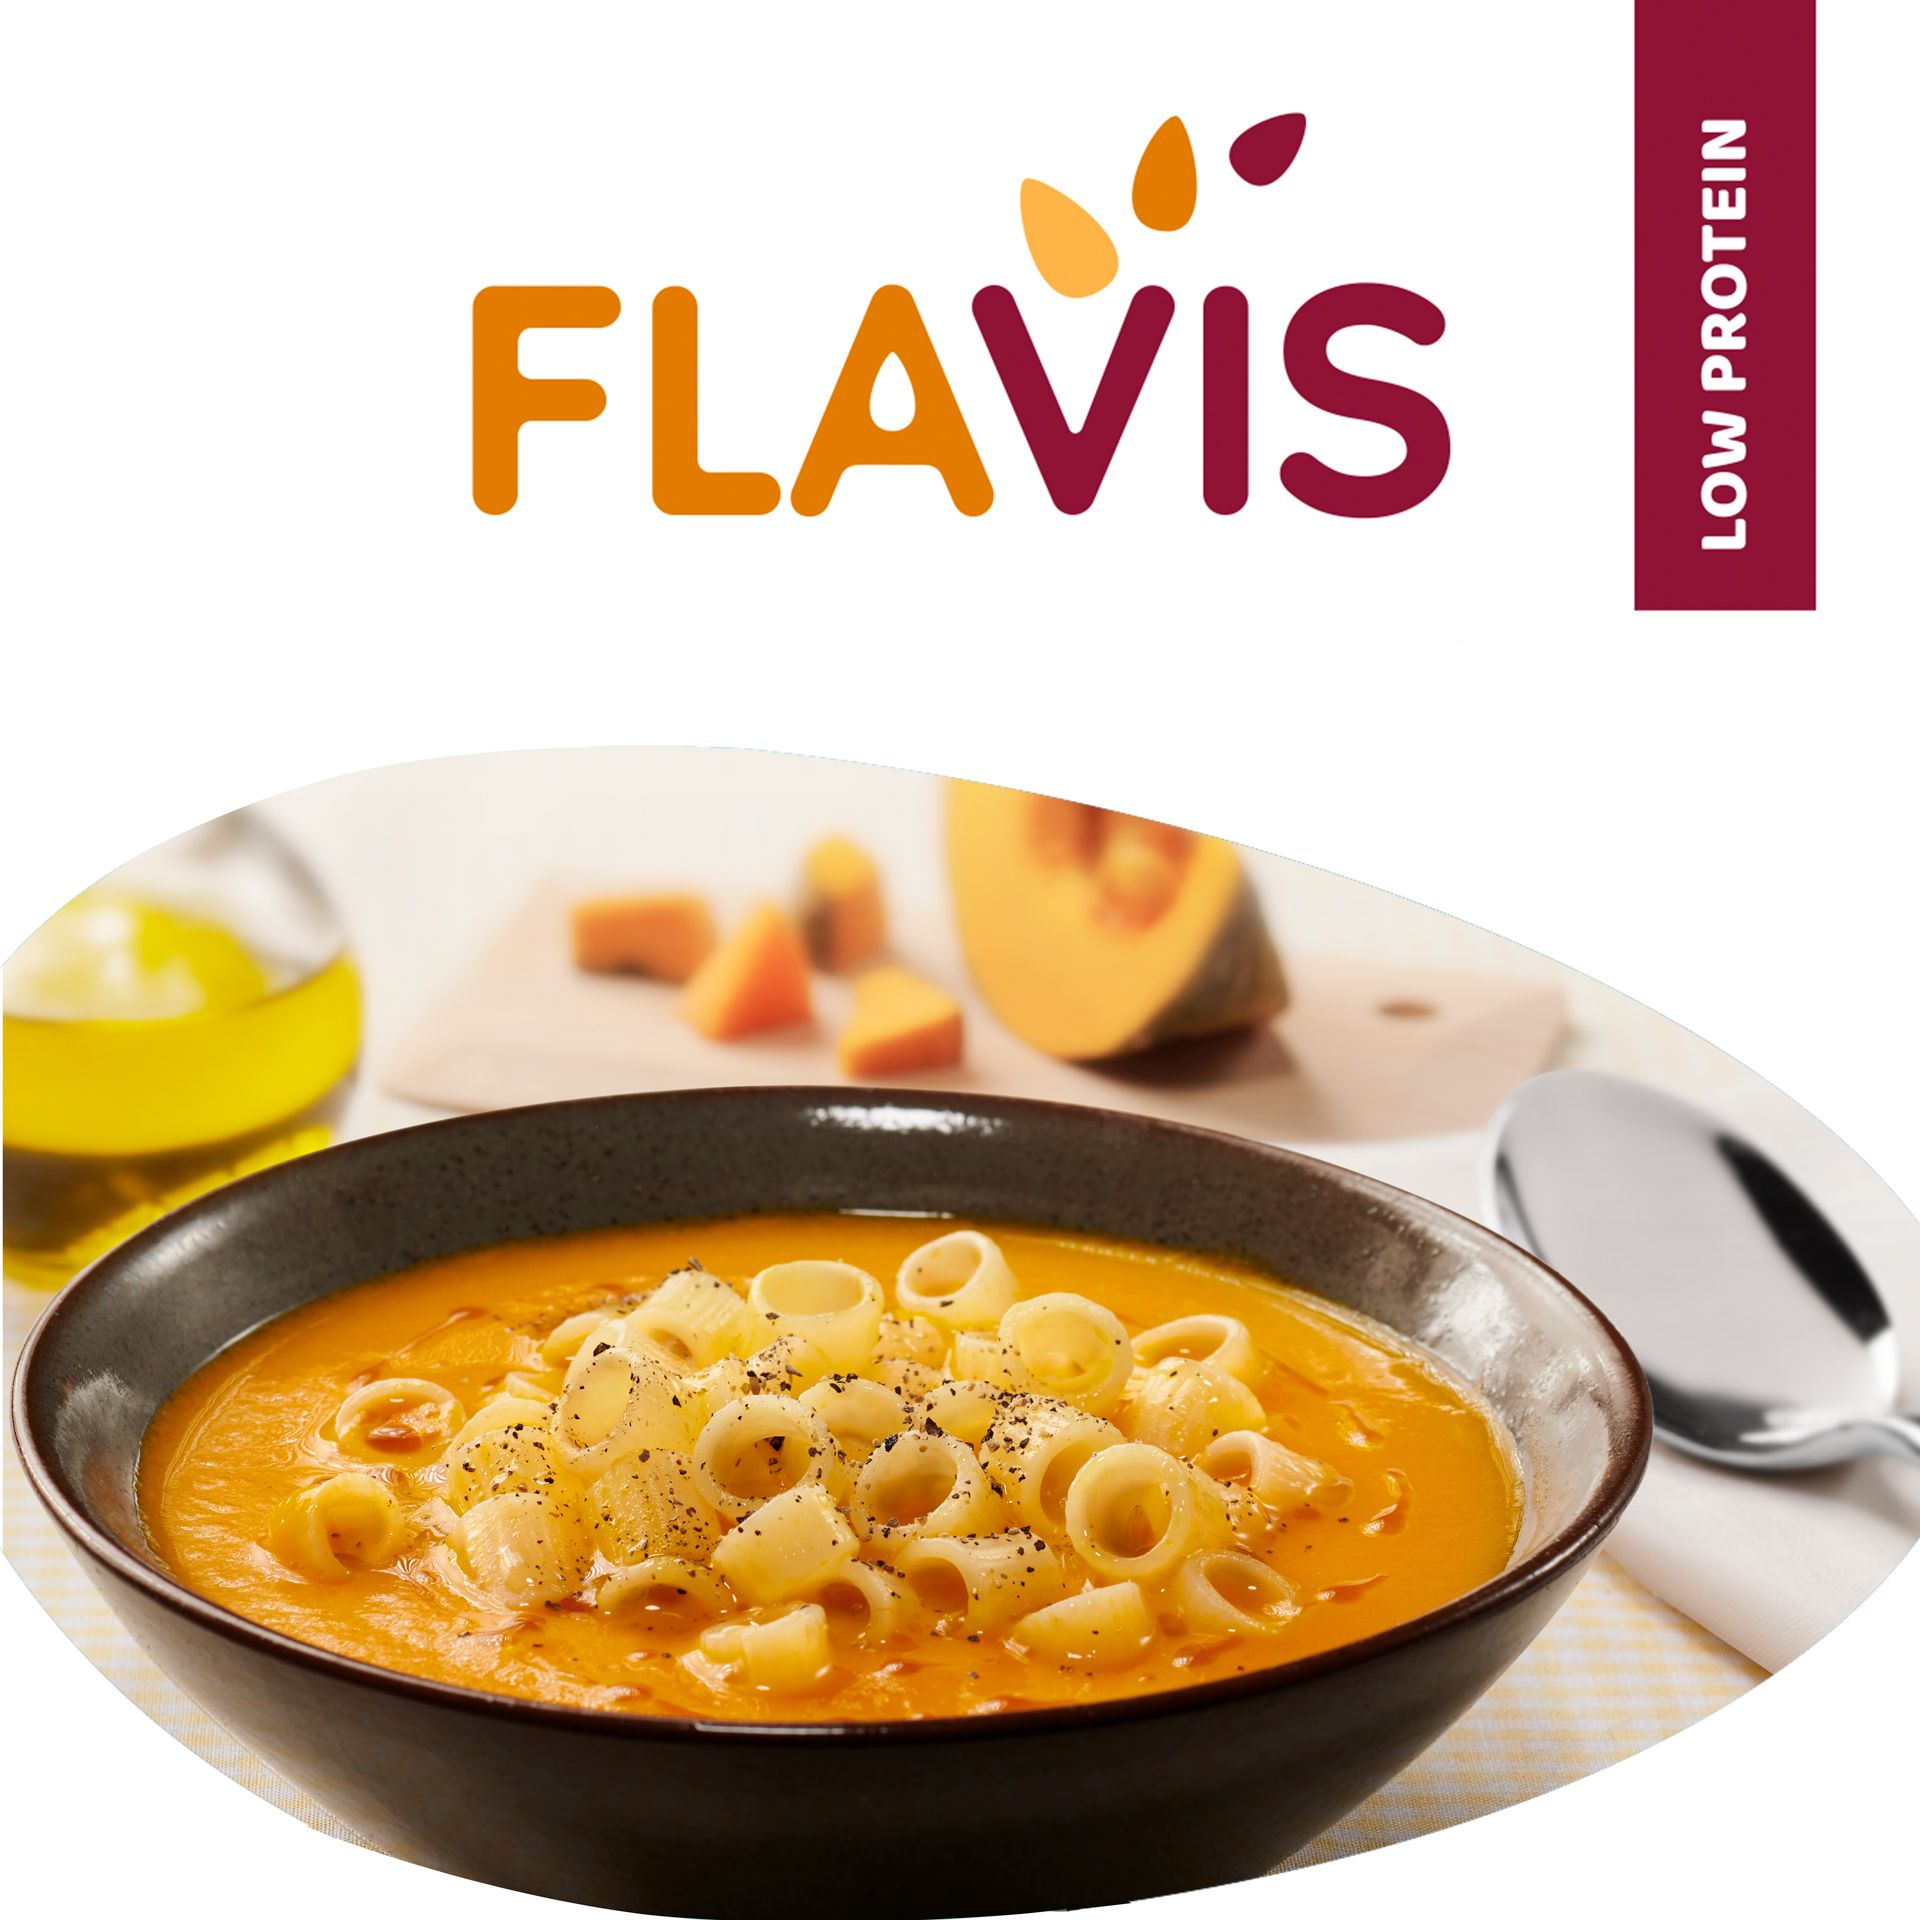 Flavis Packaging